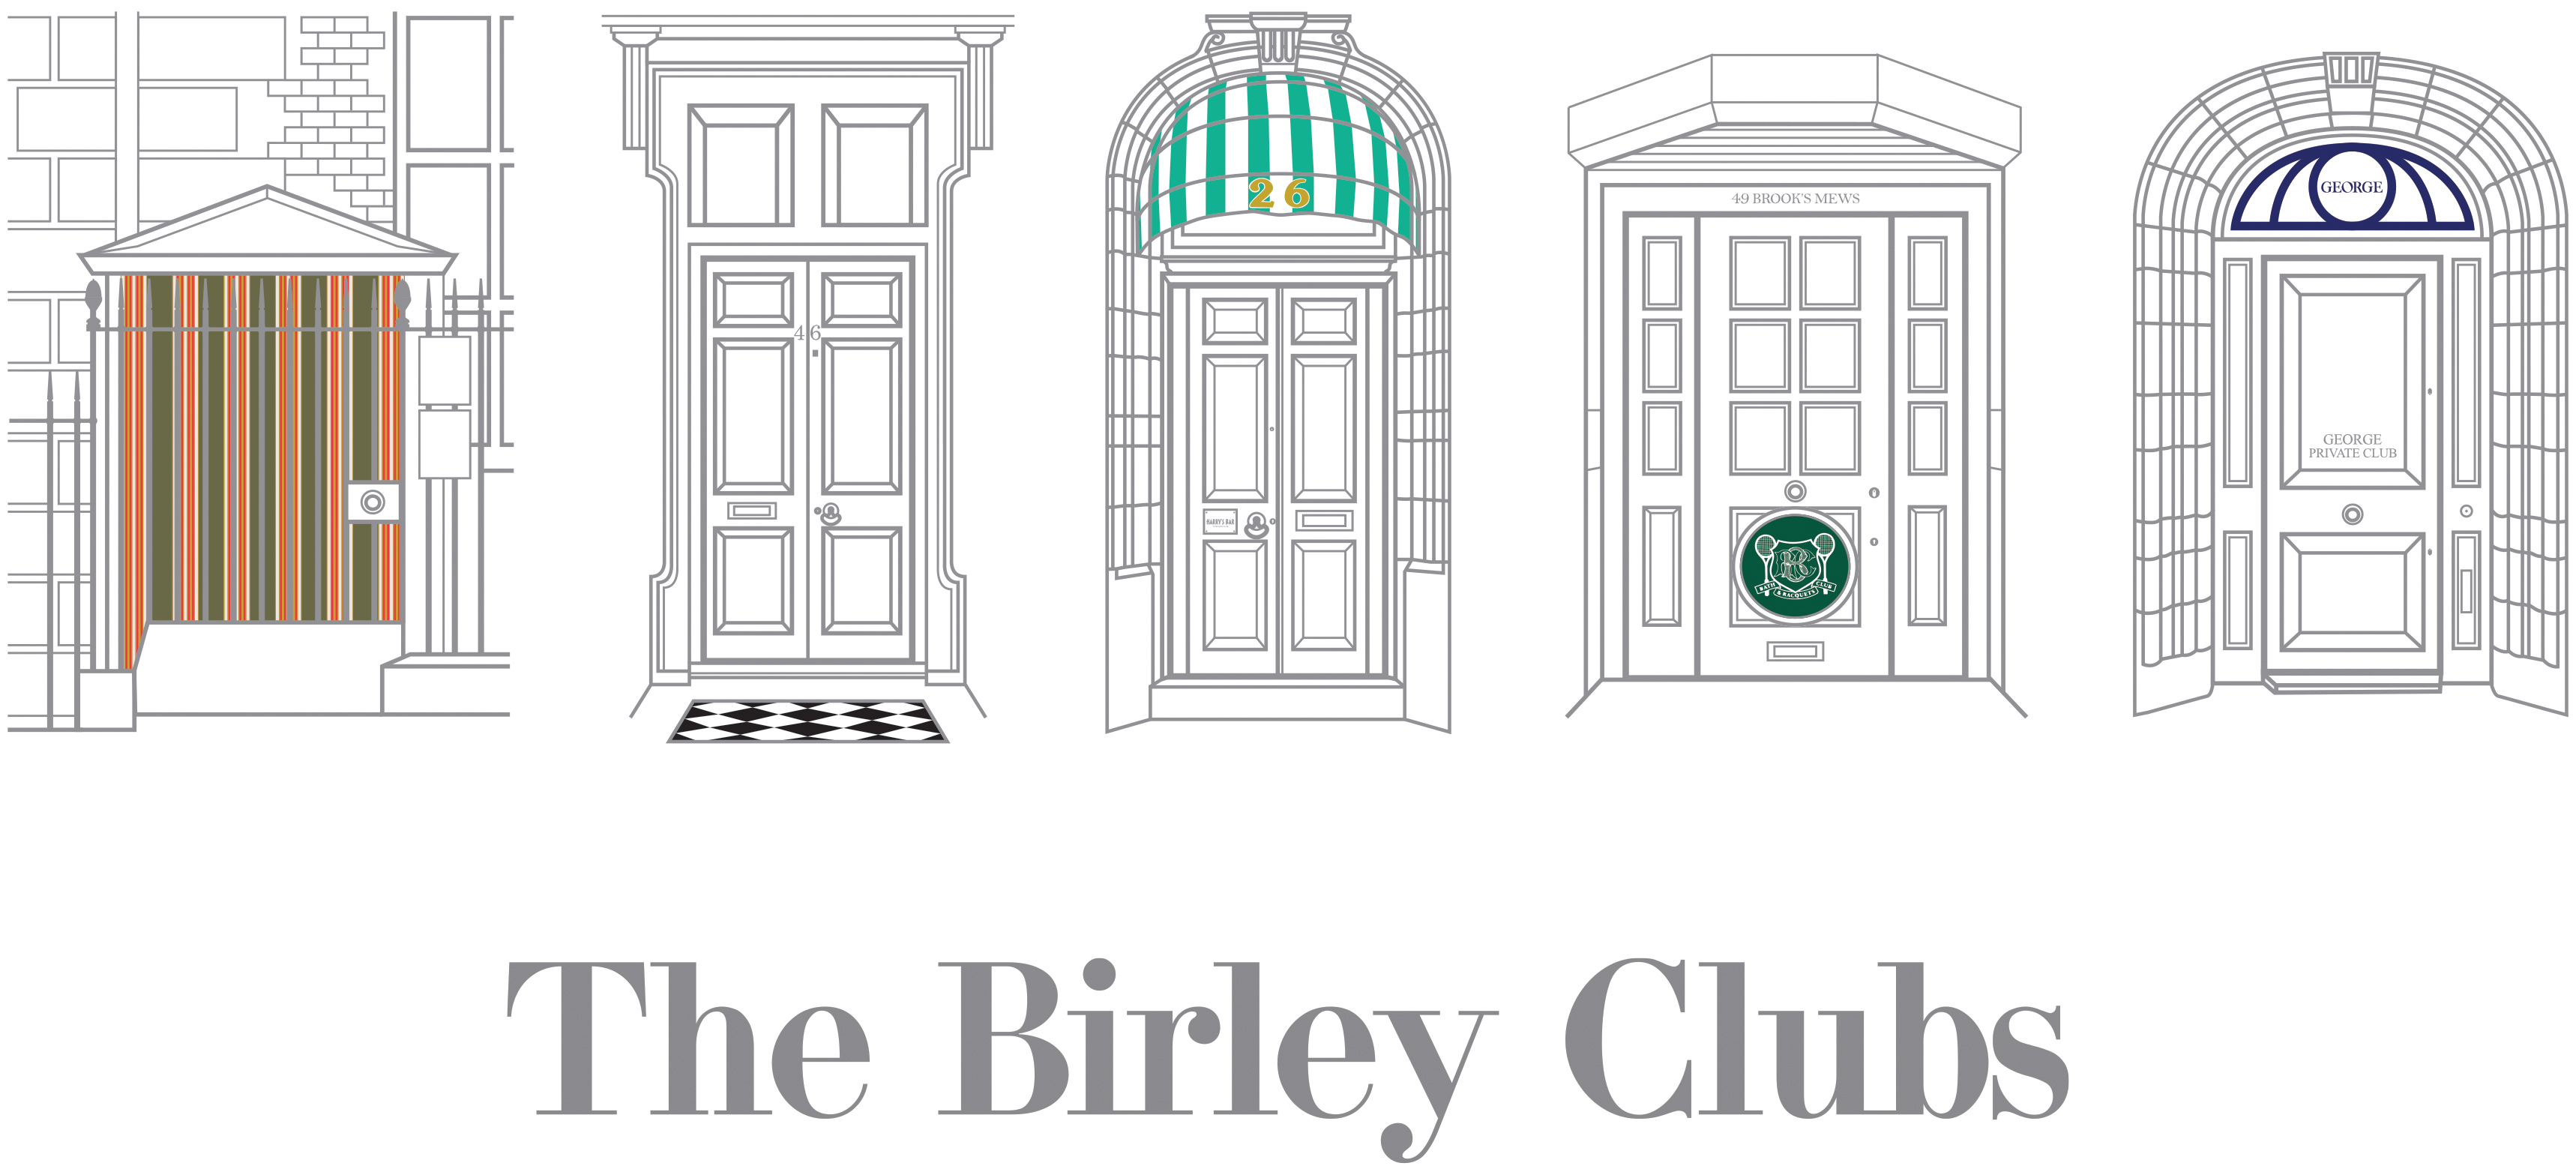 Chairman of The Birley Clubs Richard Caring sends his support